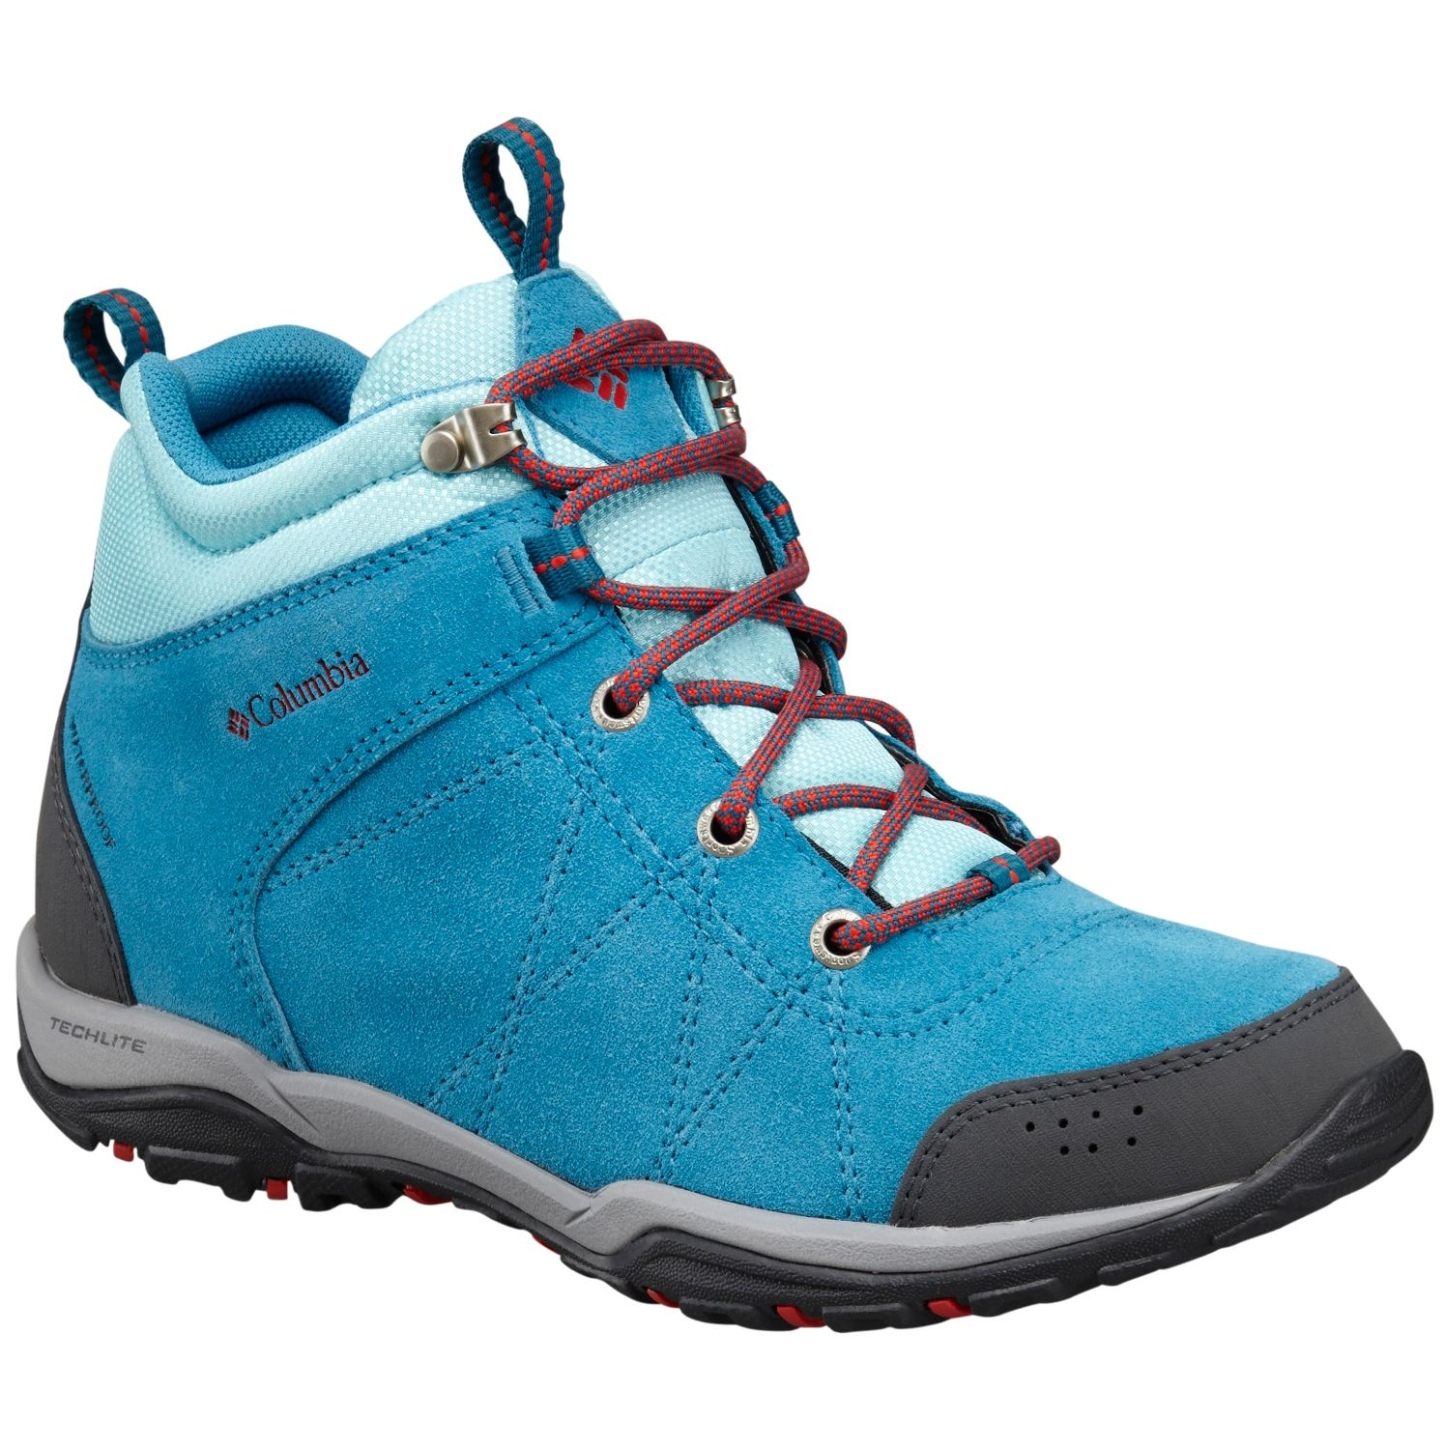 Columbia Women's Fire Venture Mid Waterproof Trail Boots Oxide Blue, Spicy-30